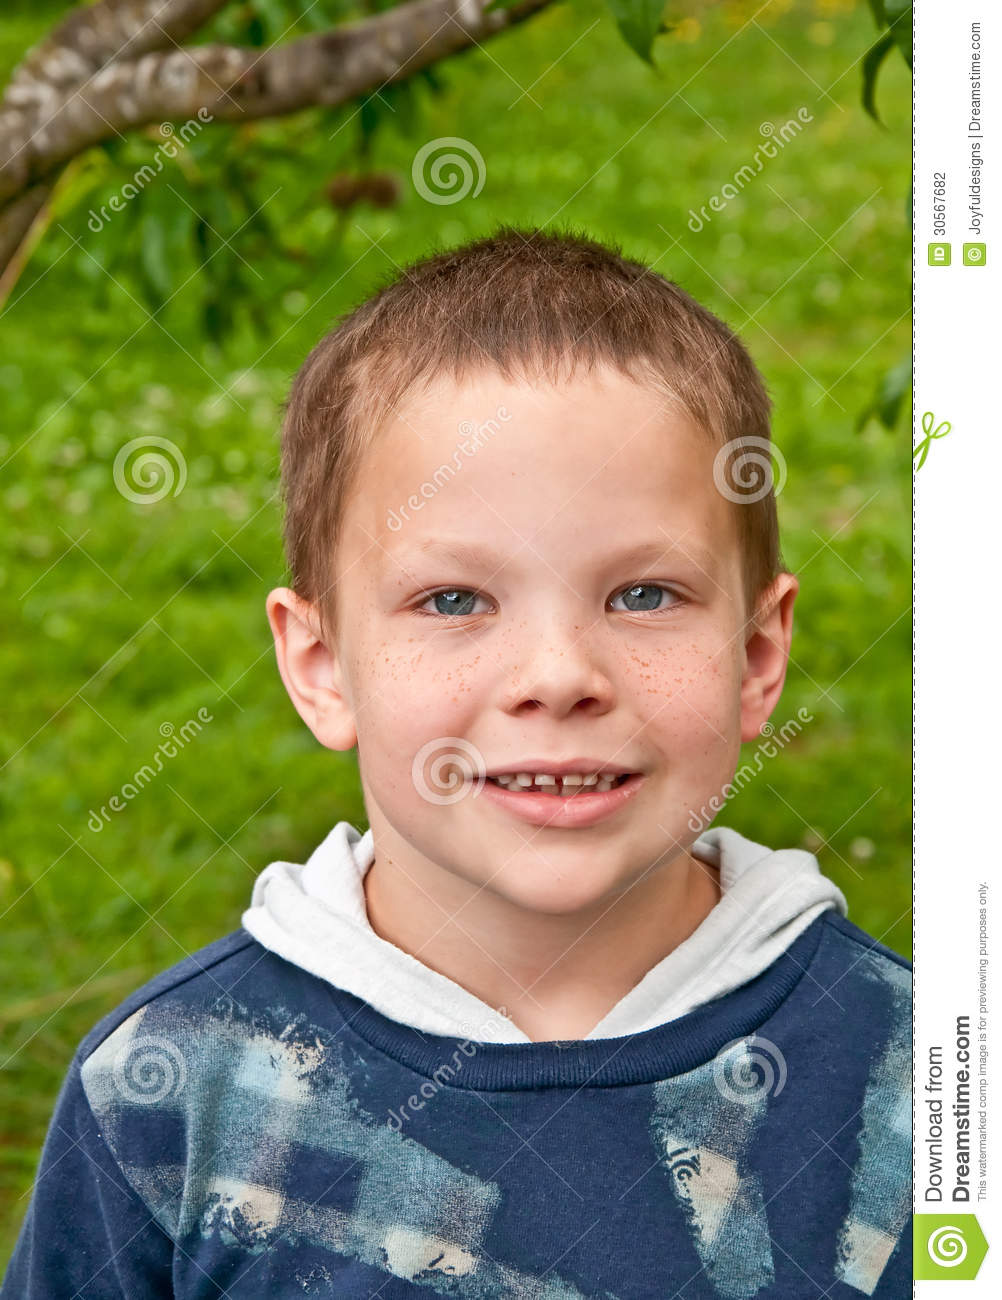 8 Year Boy Bedroom Design: Cute 8 Year Old Caucasian Boy Smiling Stock Photo